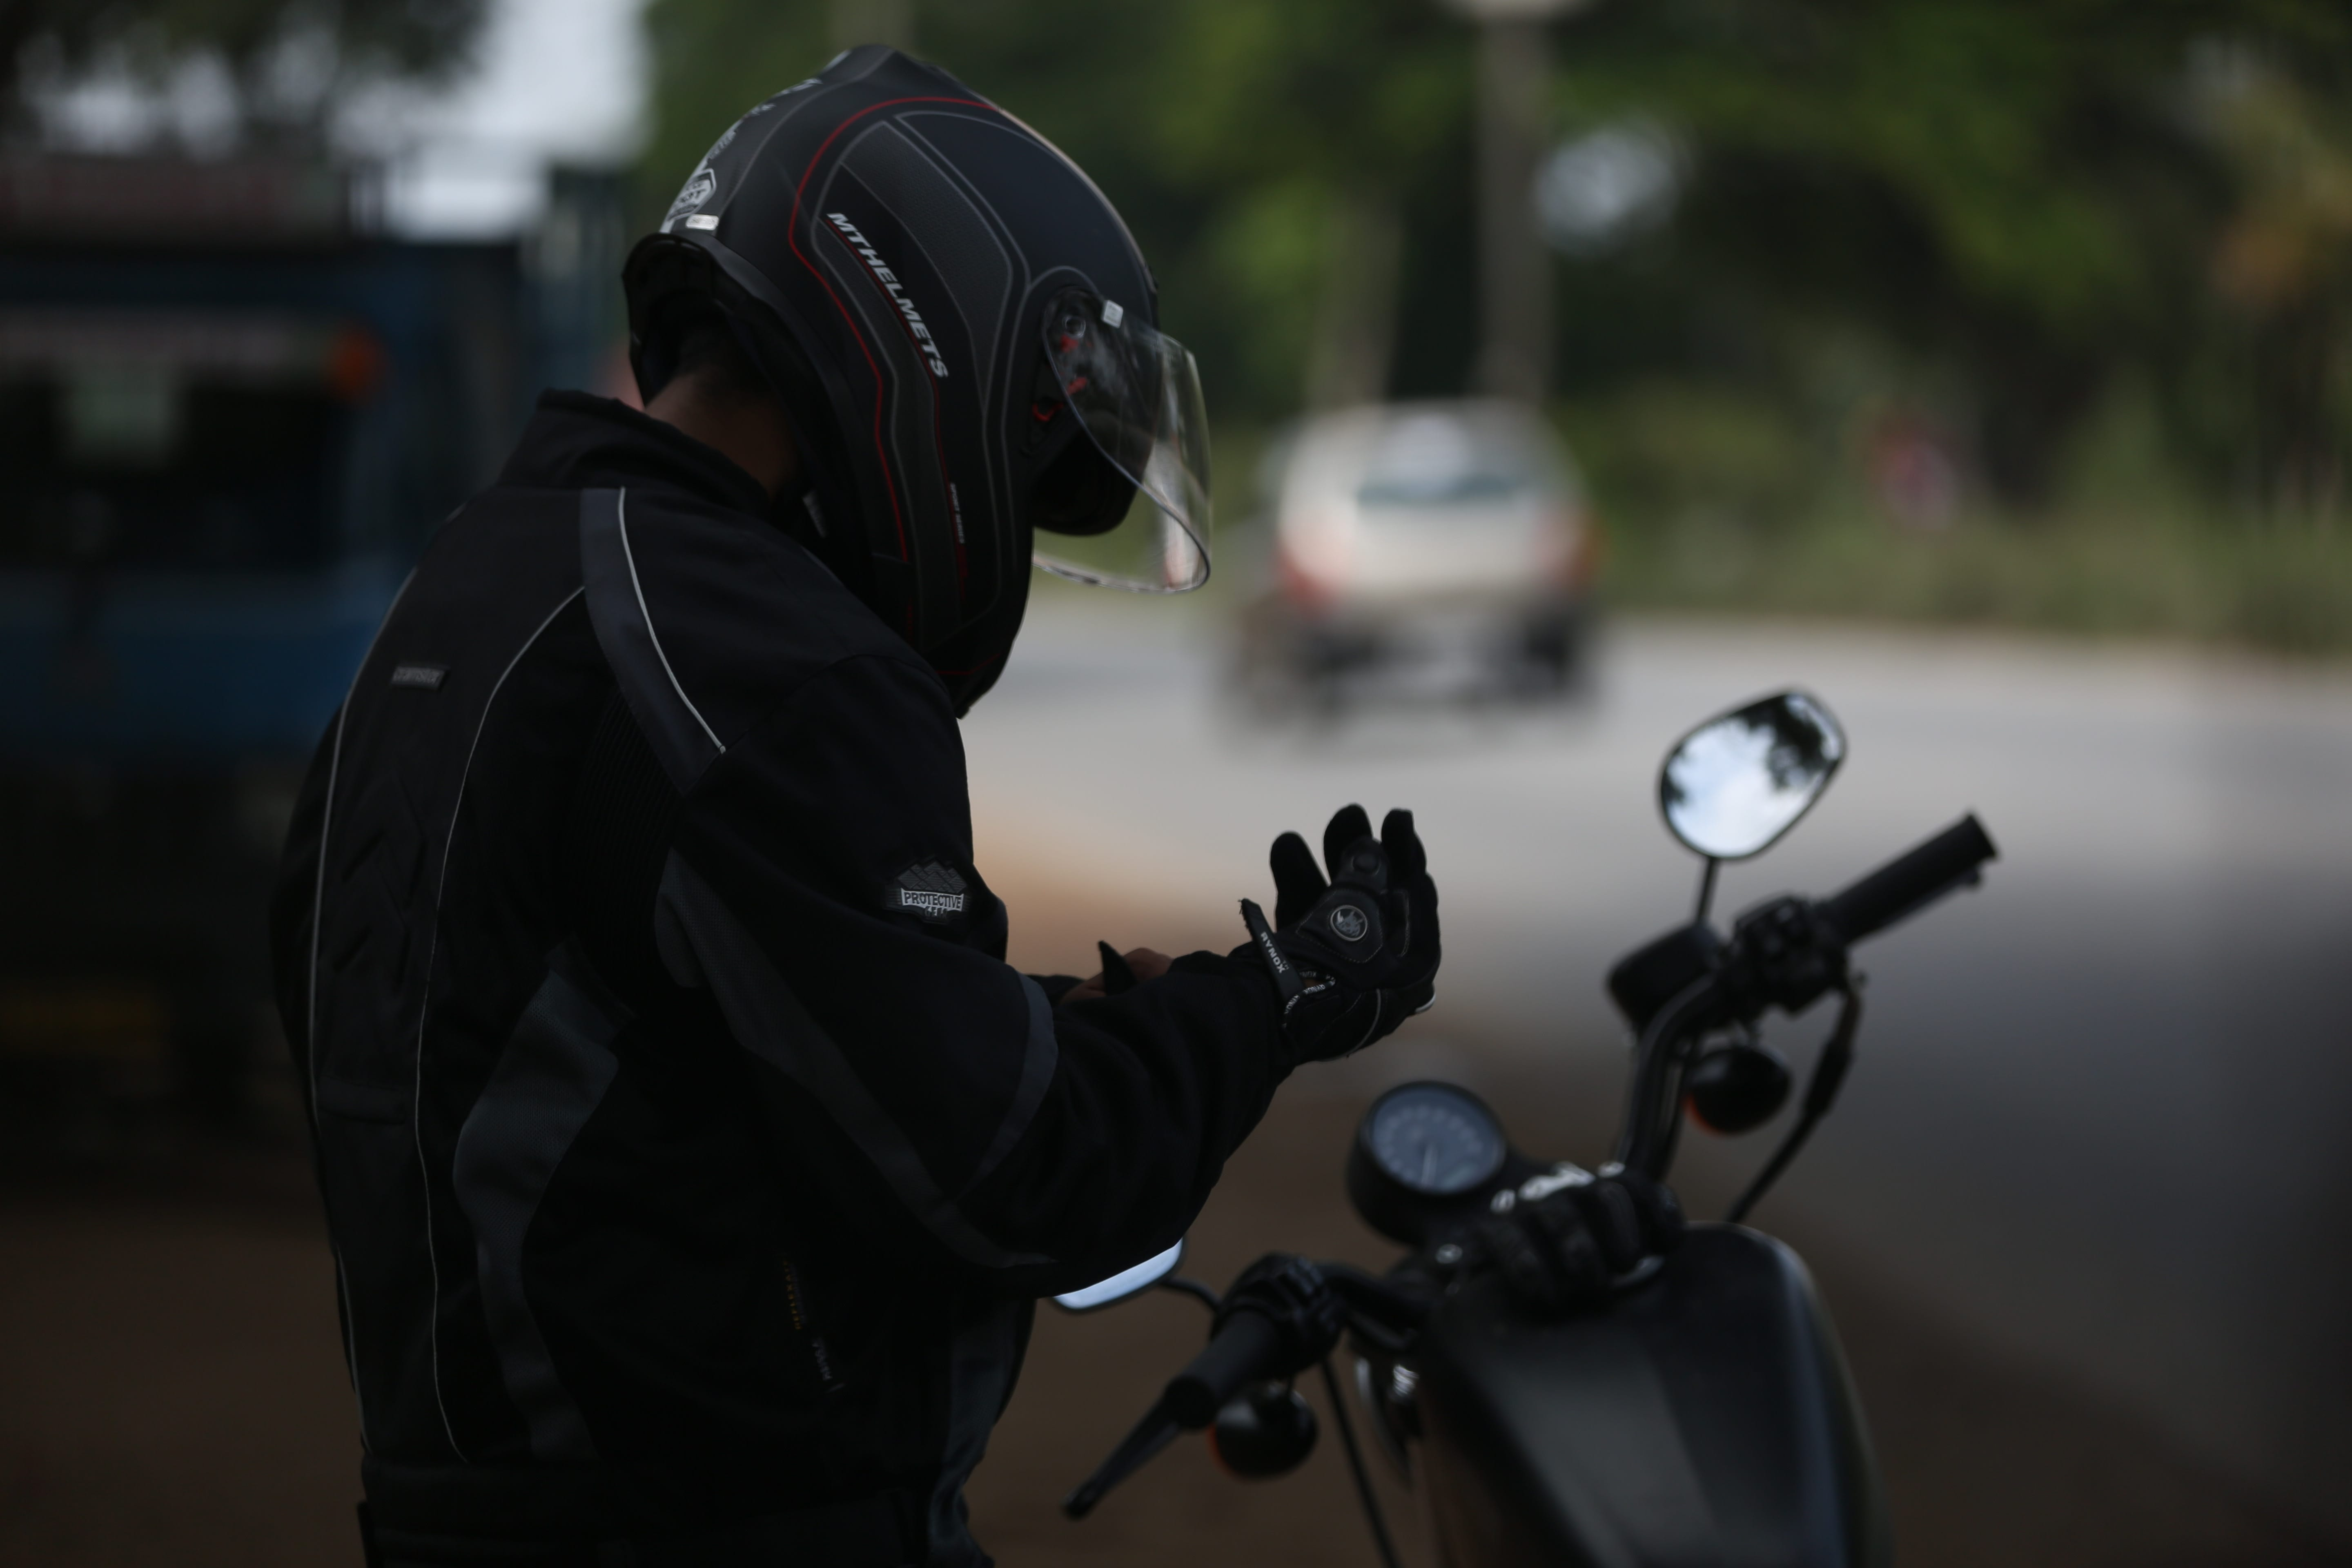 Selective focus shot of man in motorcycle suit sitting on motorcycle; image by Shajan Jacob, via Unsplash.com.